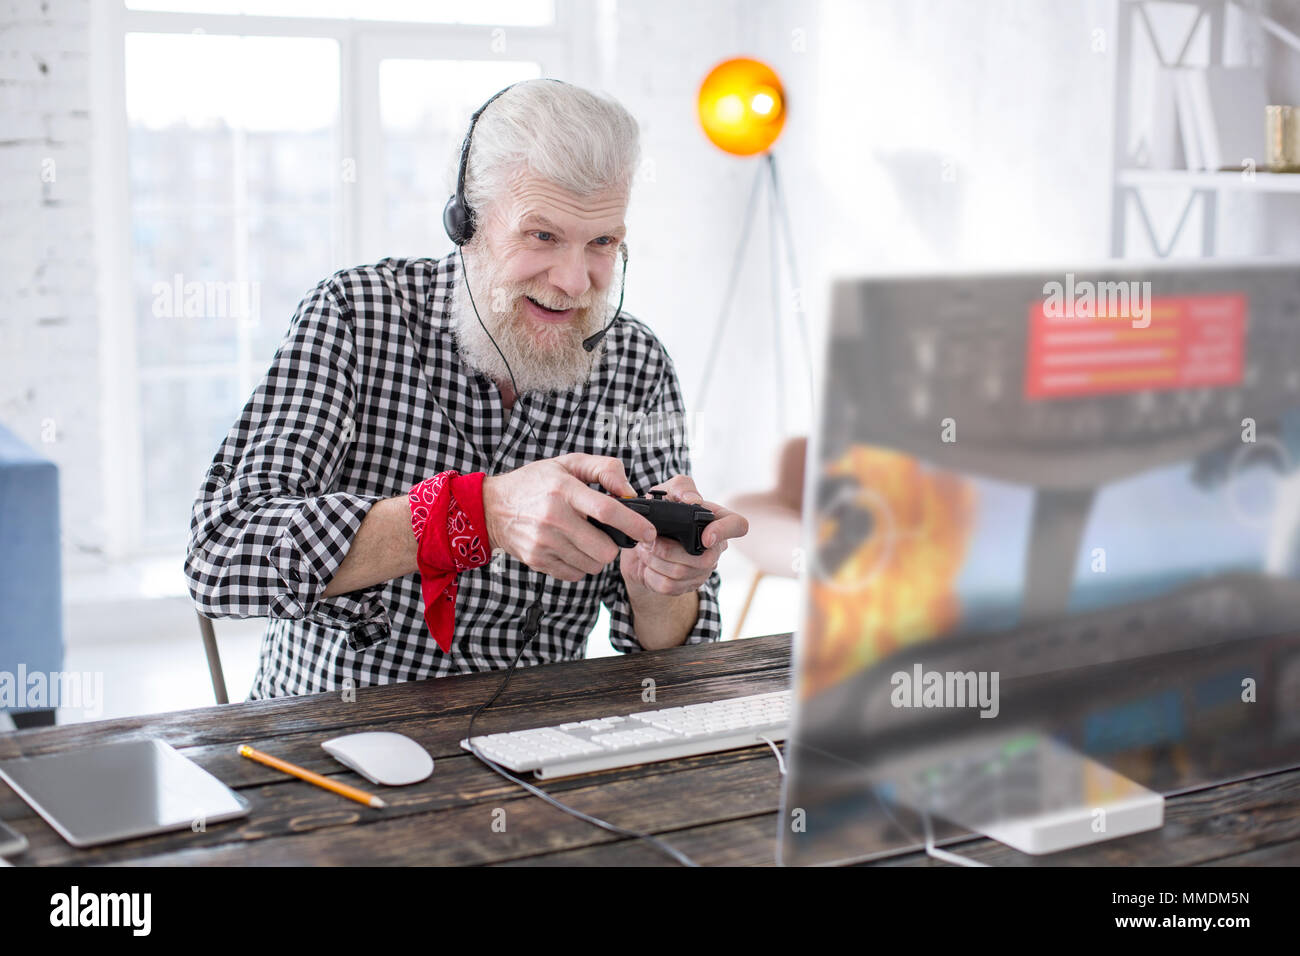 Excited senior man playing online game with controller - Stock Image